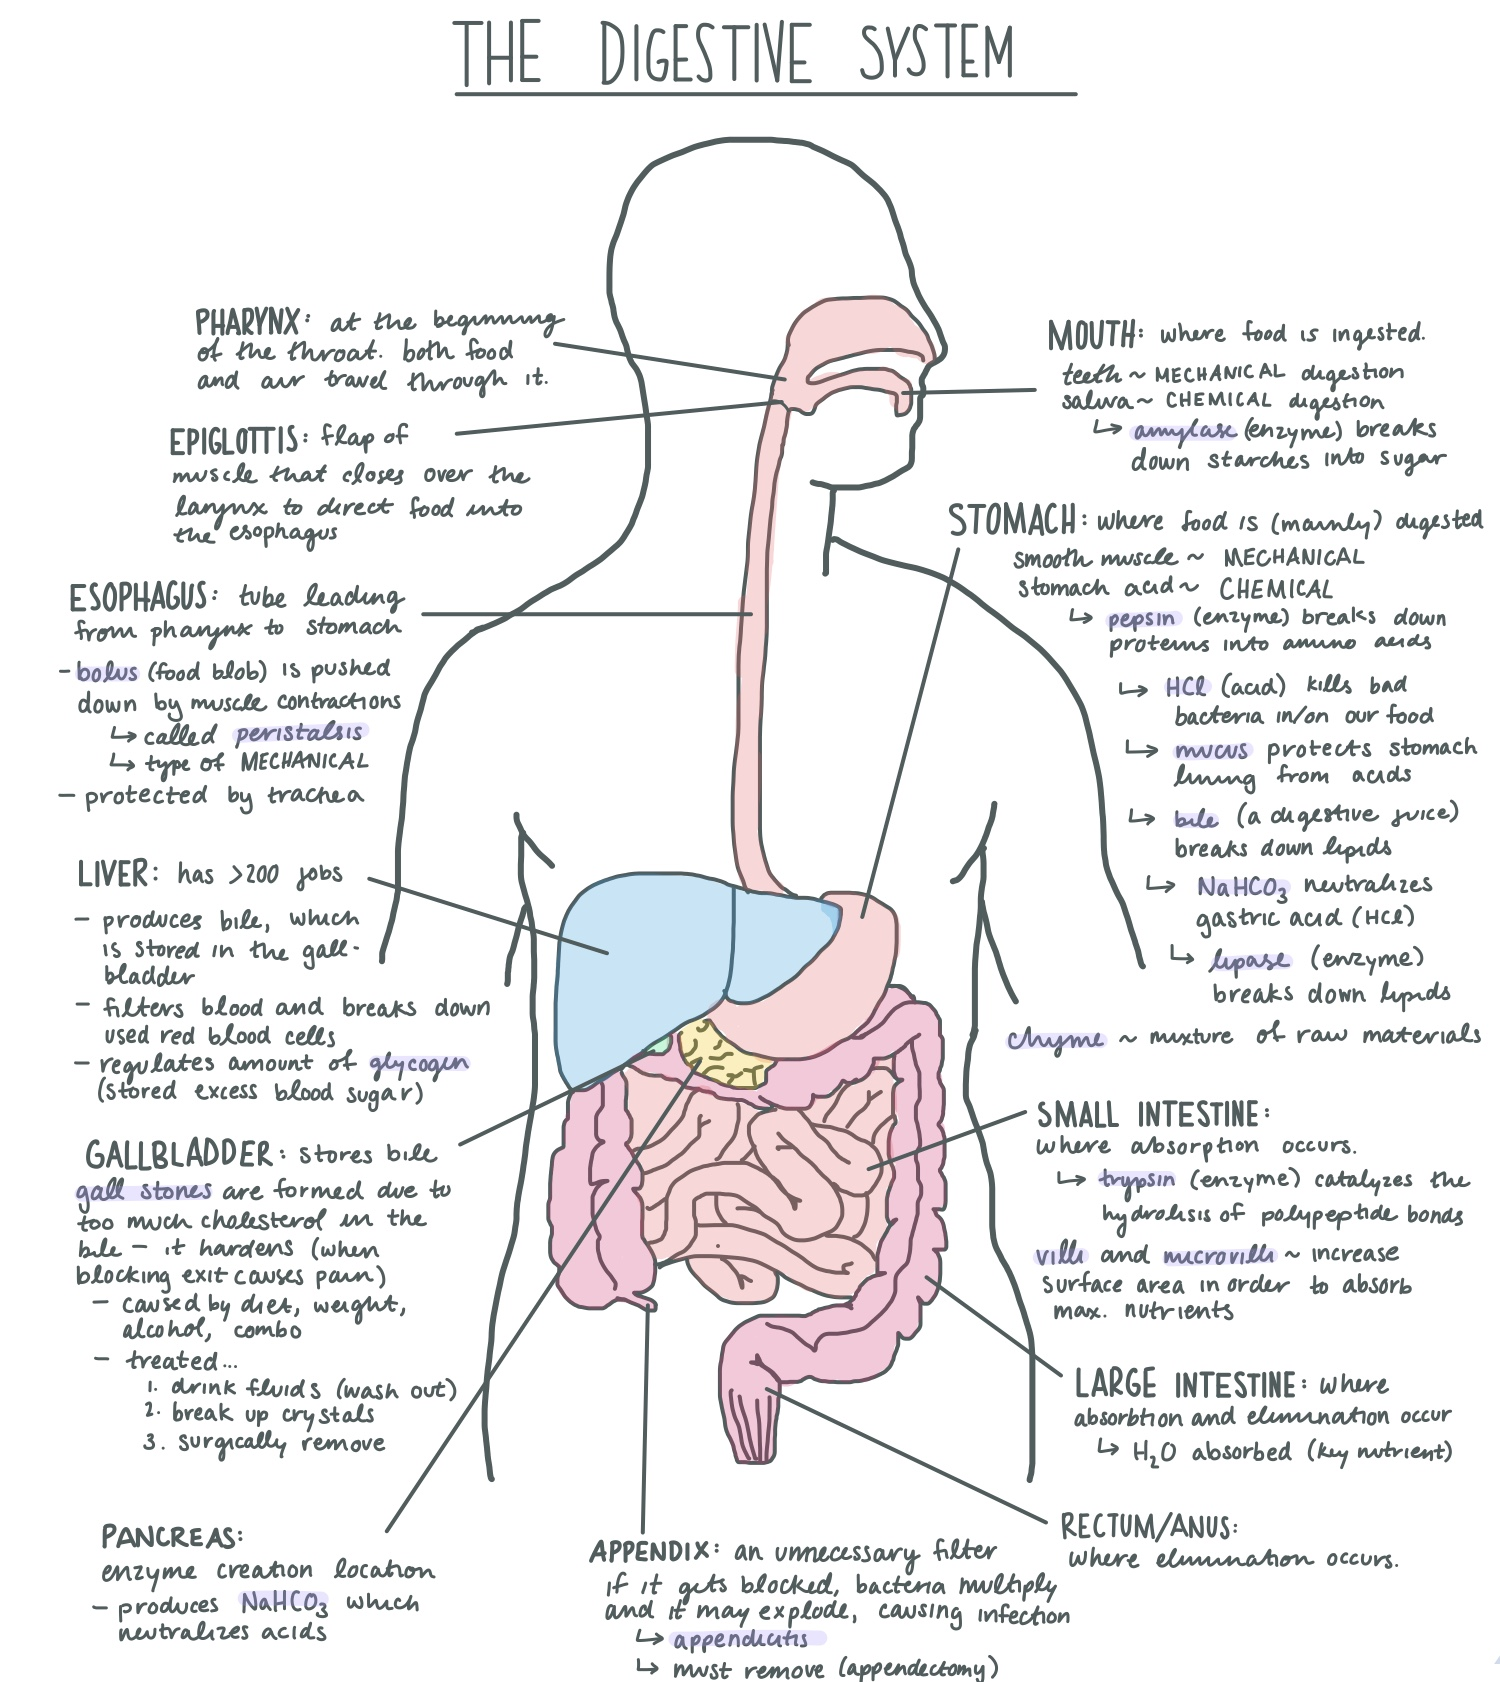 Digestive System Diagram | File Digestive System Diagram Jpg Wikimedia Commons